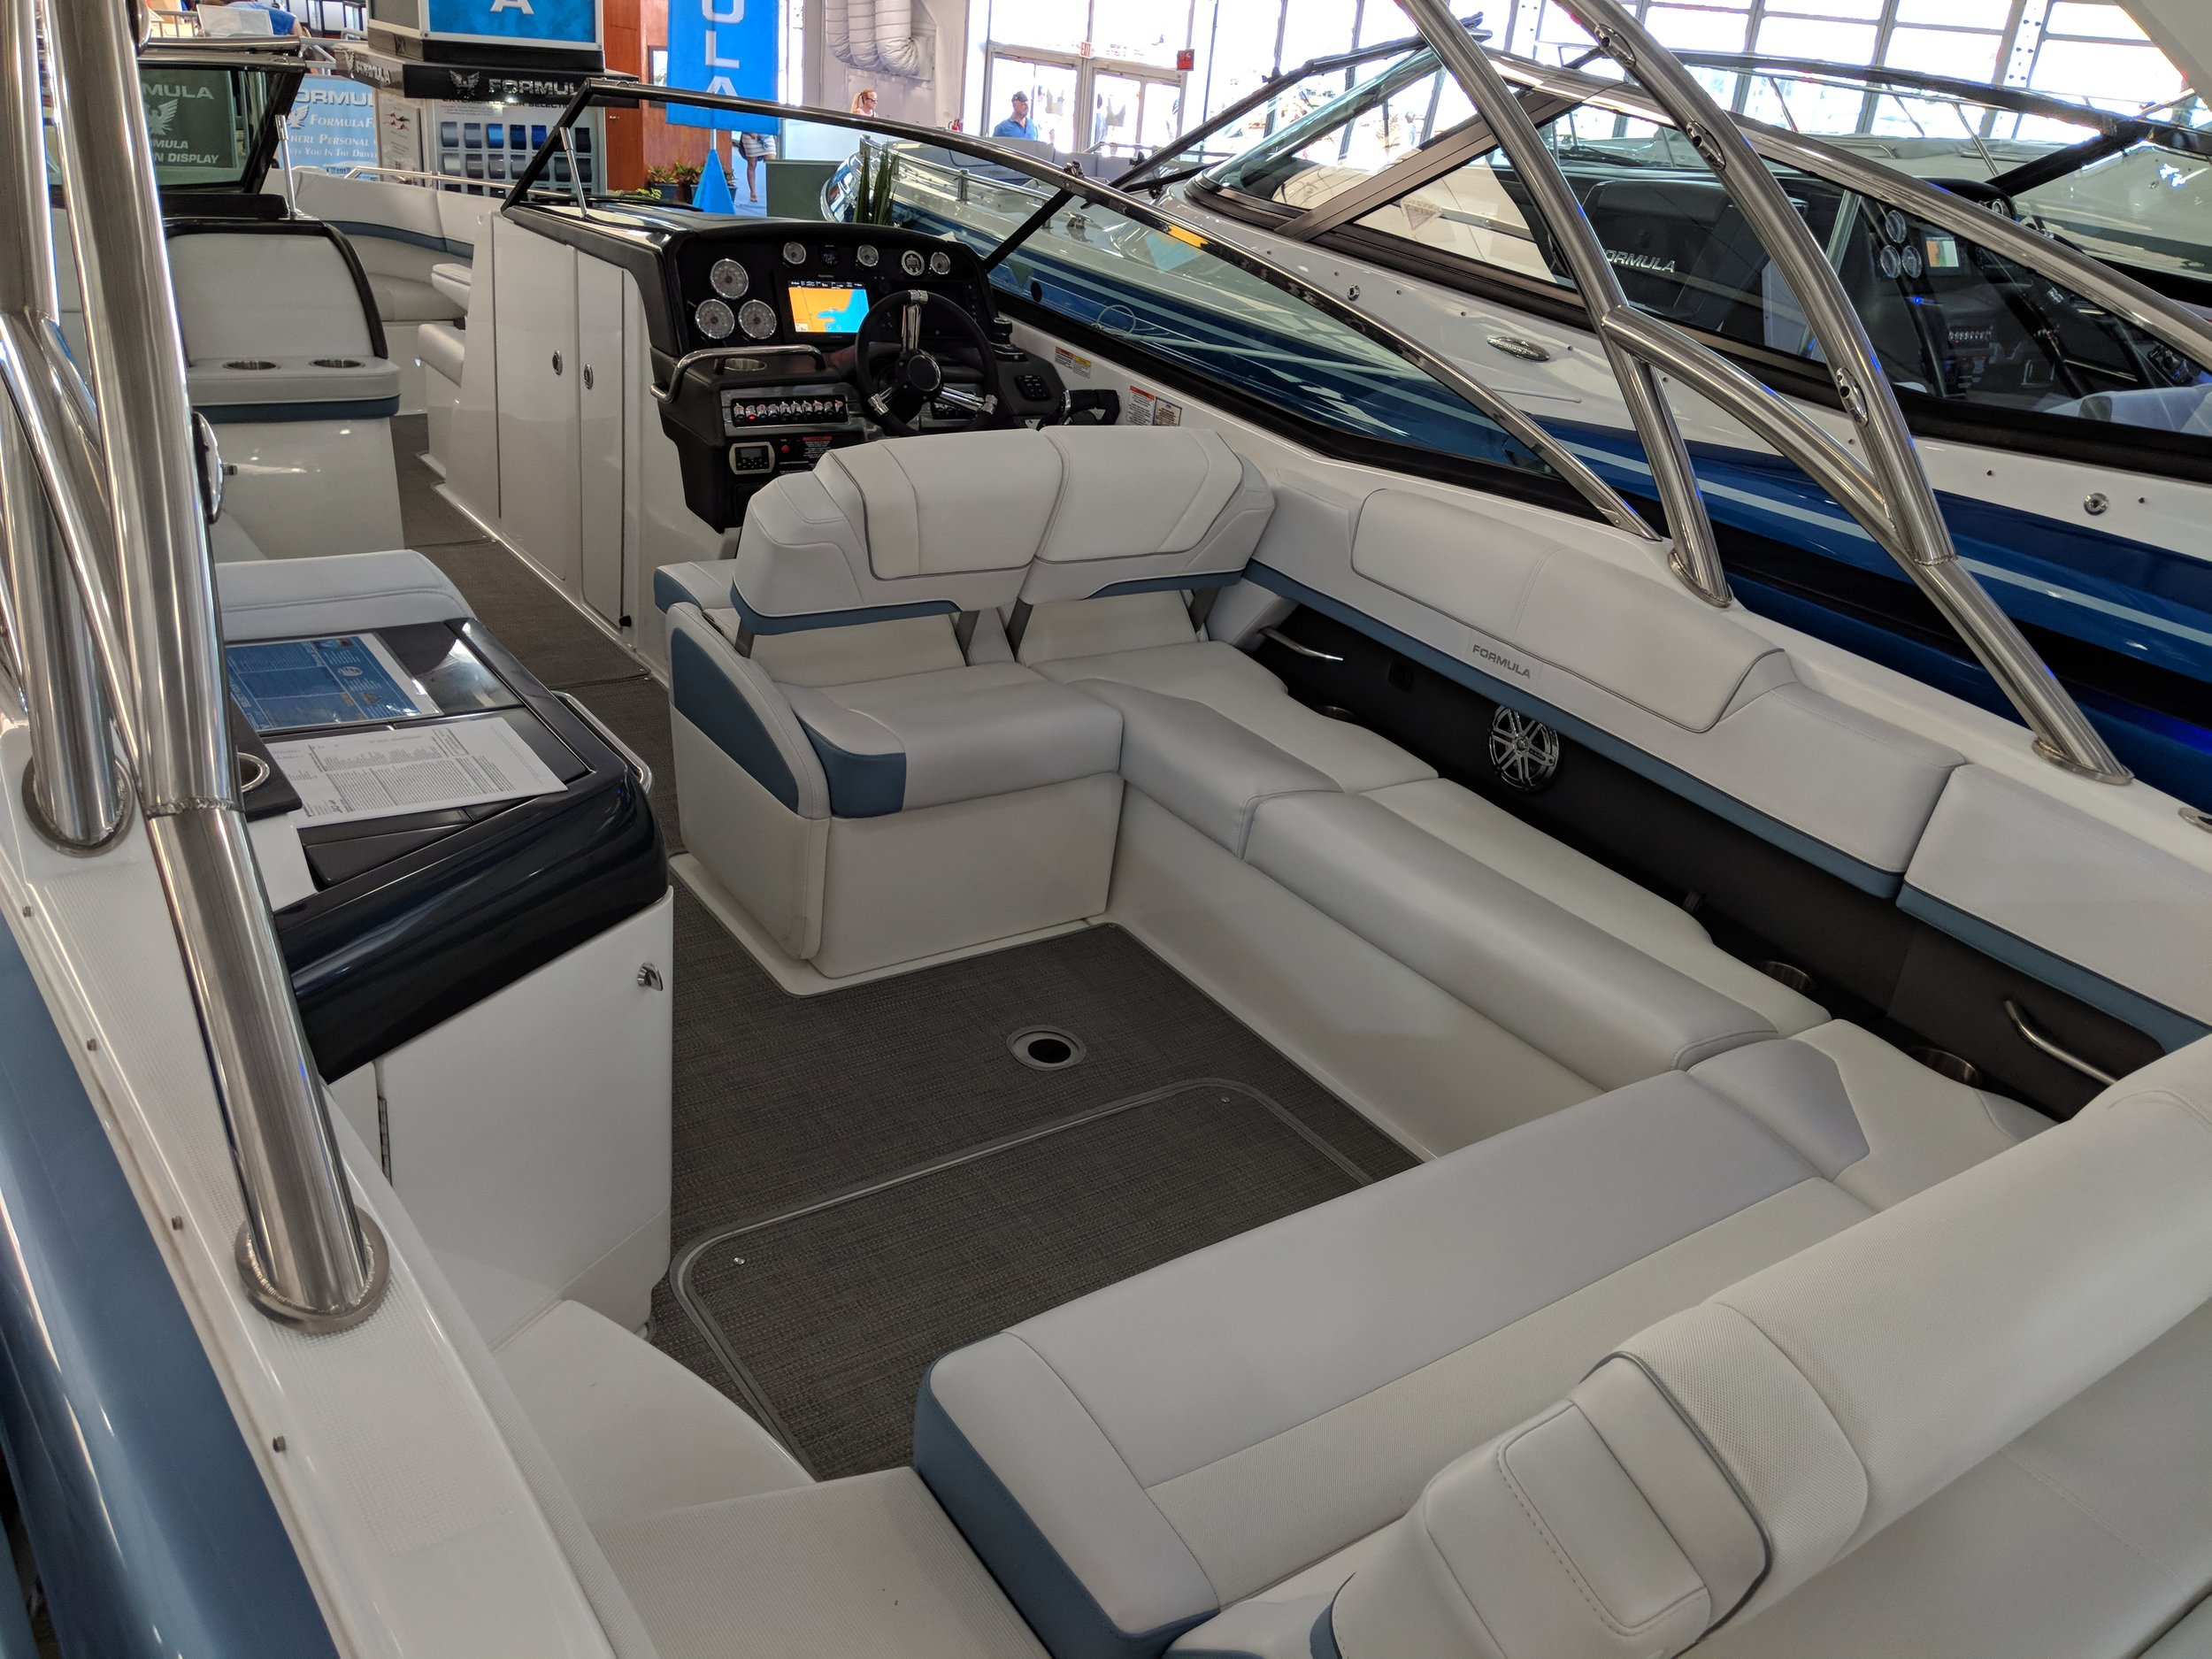 So many boat manufacturers get this wrong. Corners suck for seating, if one person sits on one side, their legs block the next seat. Here the back to back seats don't work either. Nor does the kitchenette, and the tower that your head will hit. This is a disaster.